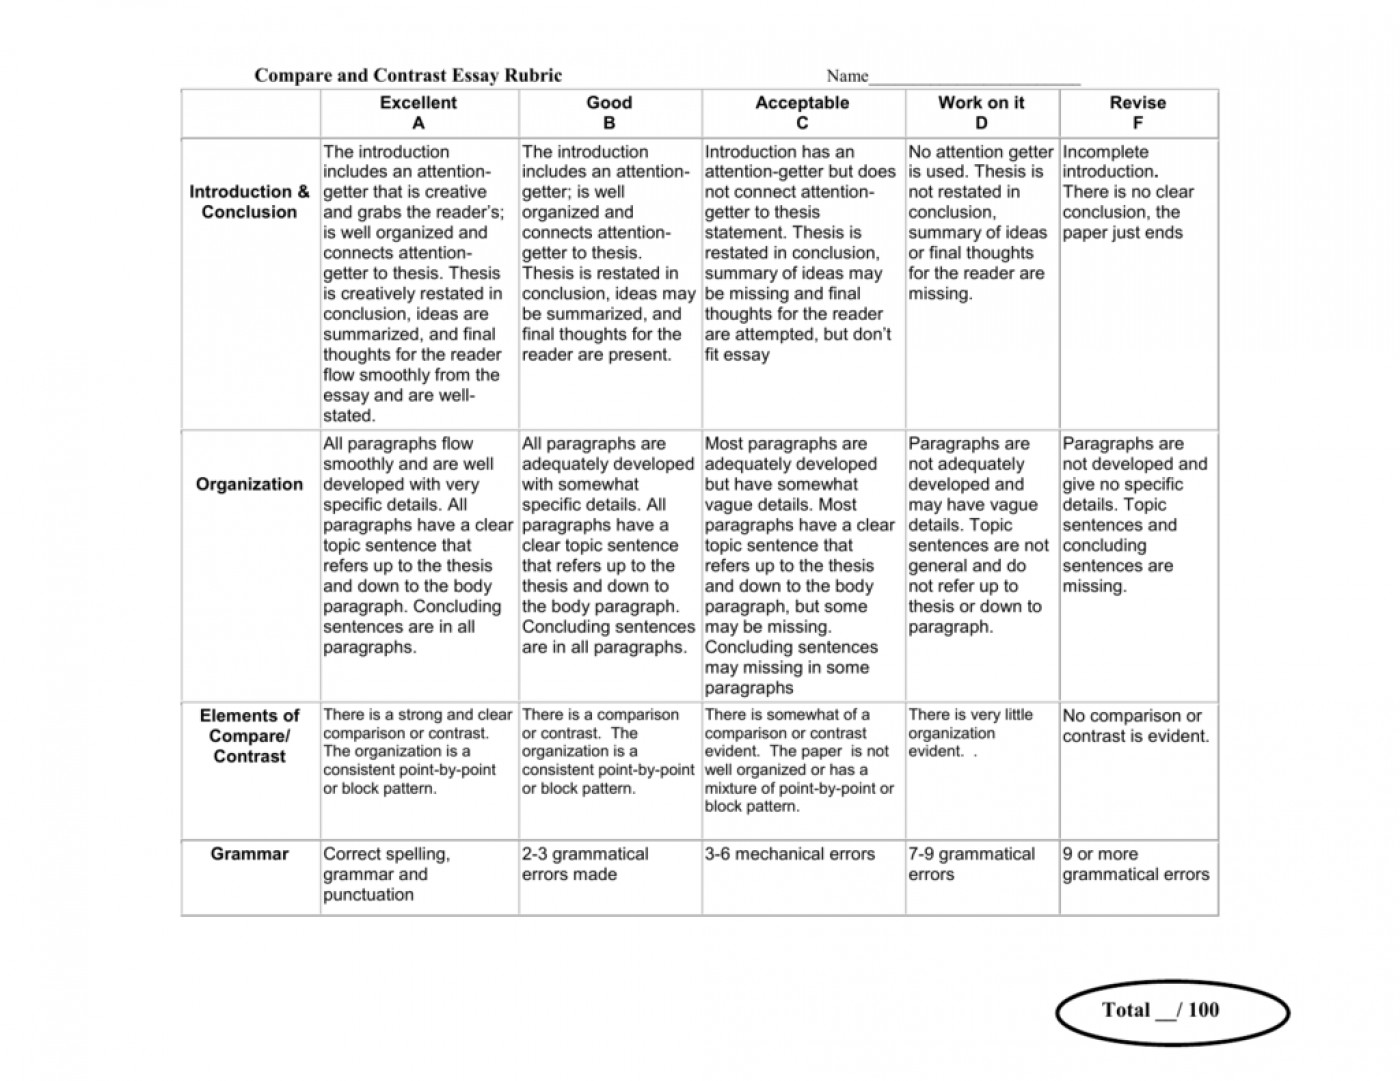 002 Essay Example Compare And Contrast Rubric 007703019 2 Wondrous 4th Grade 7th 3rd 1400